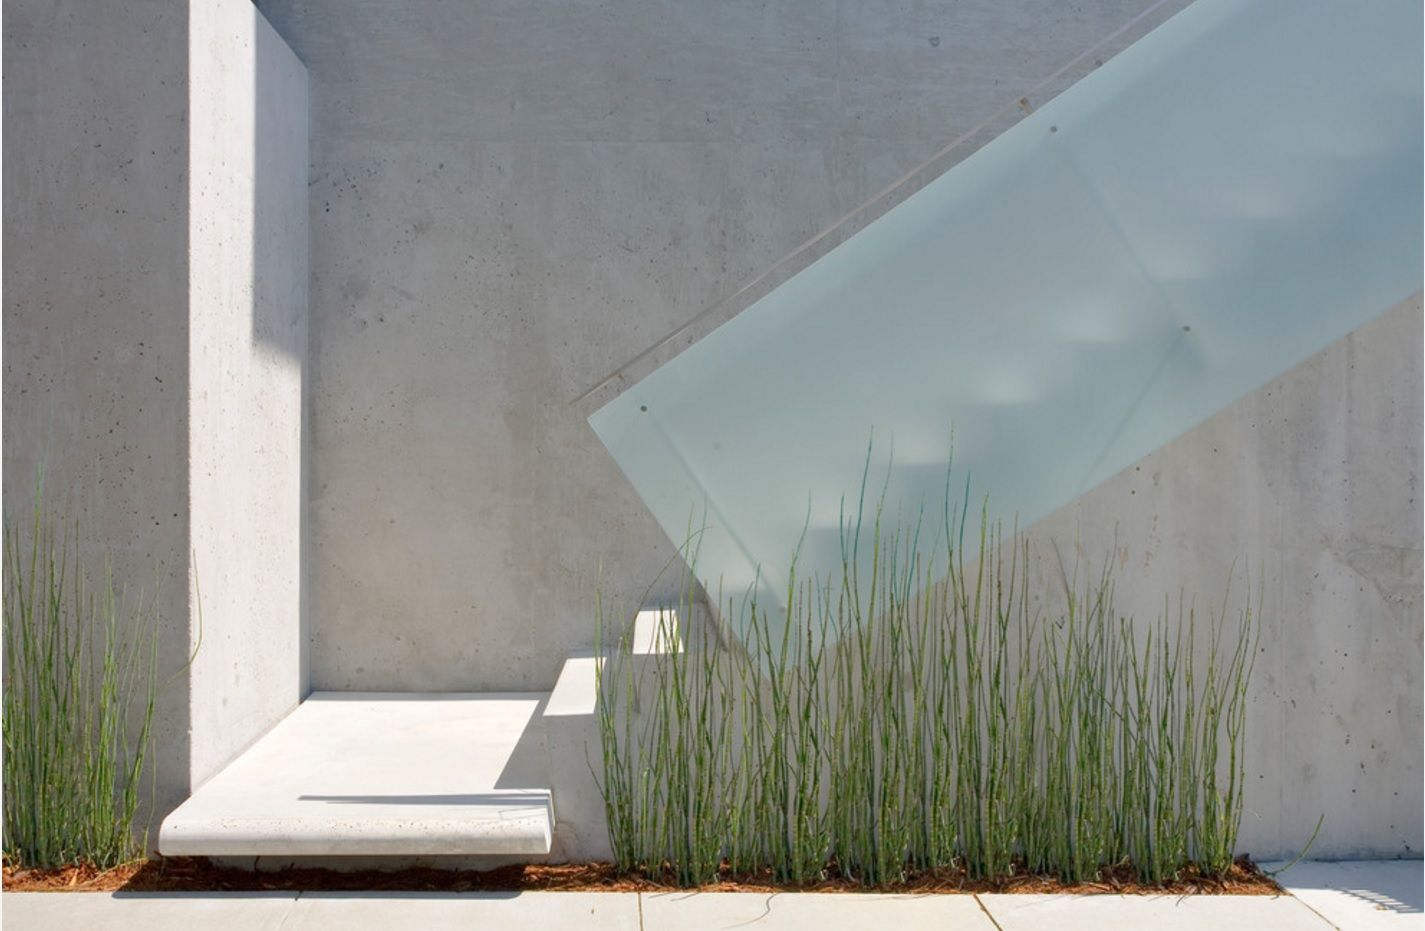 Modern and even futuristic glass and concrete design of the staircase with notes of eco